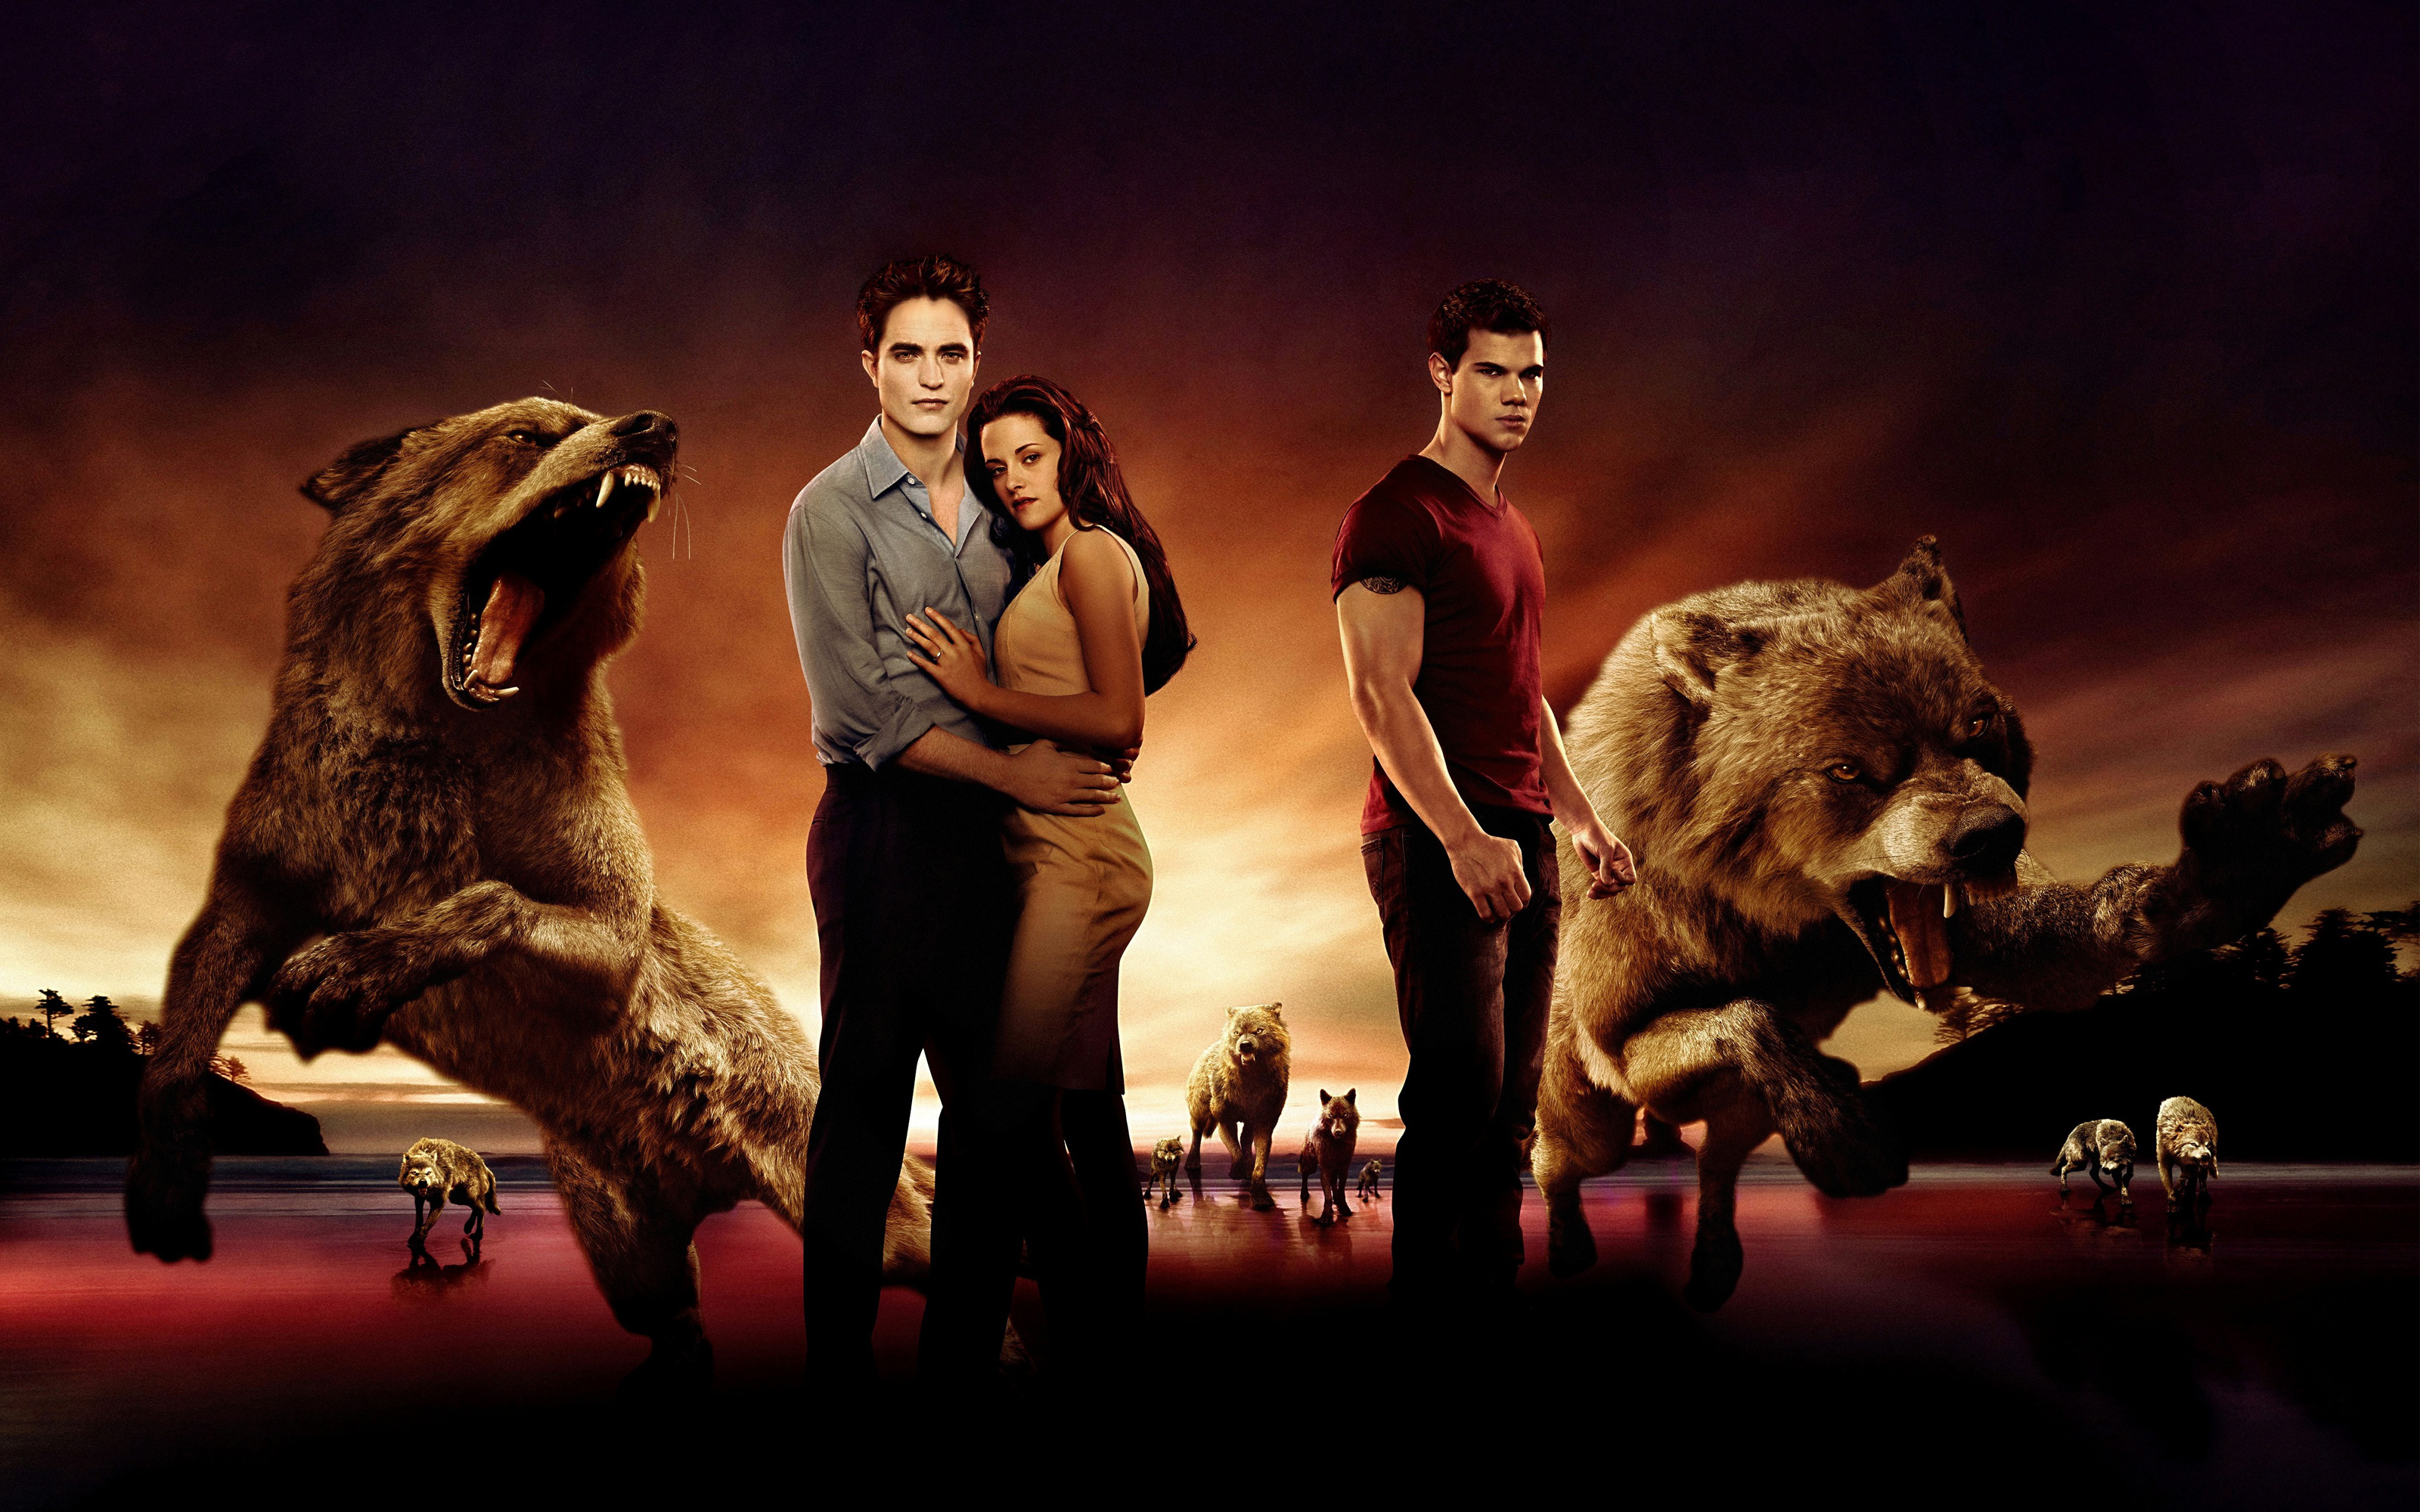 Twilight Saga Breaking Dawn Part 2012 wallpaper